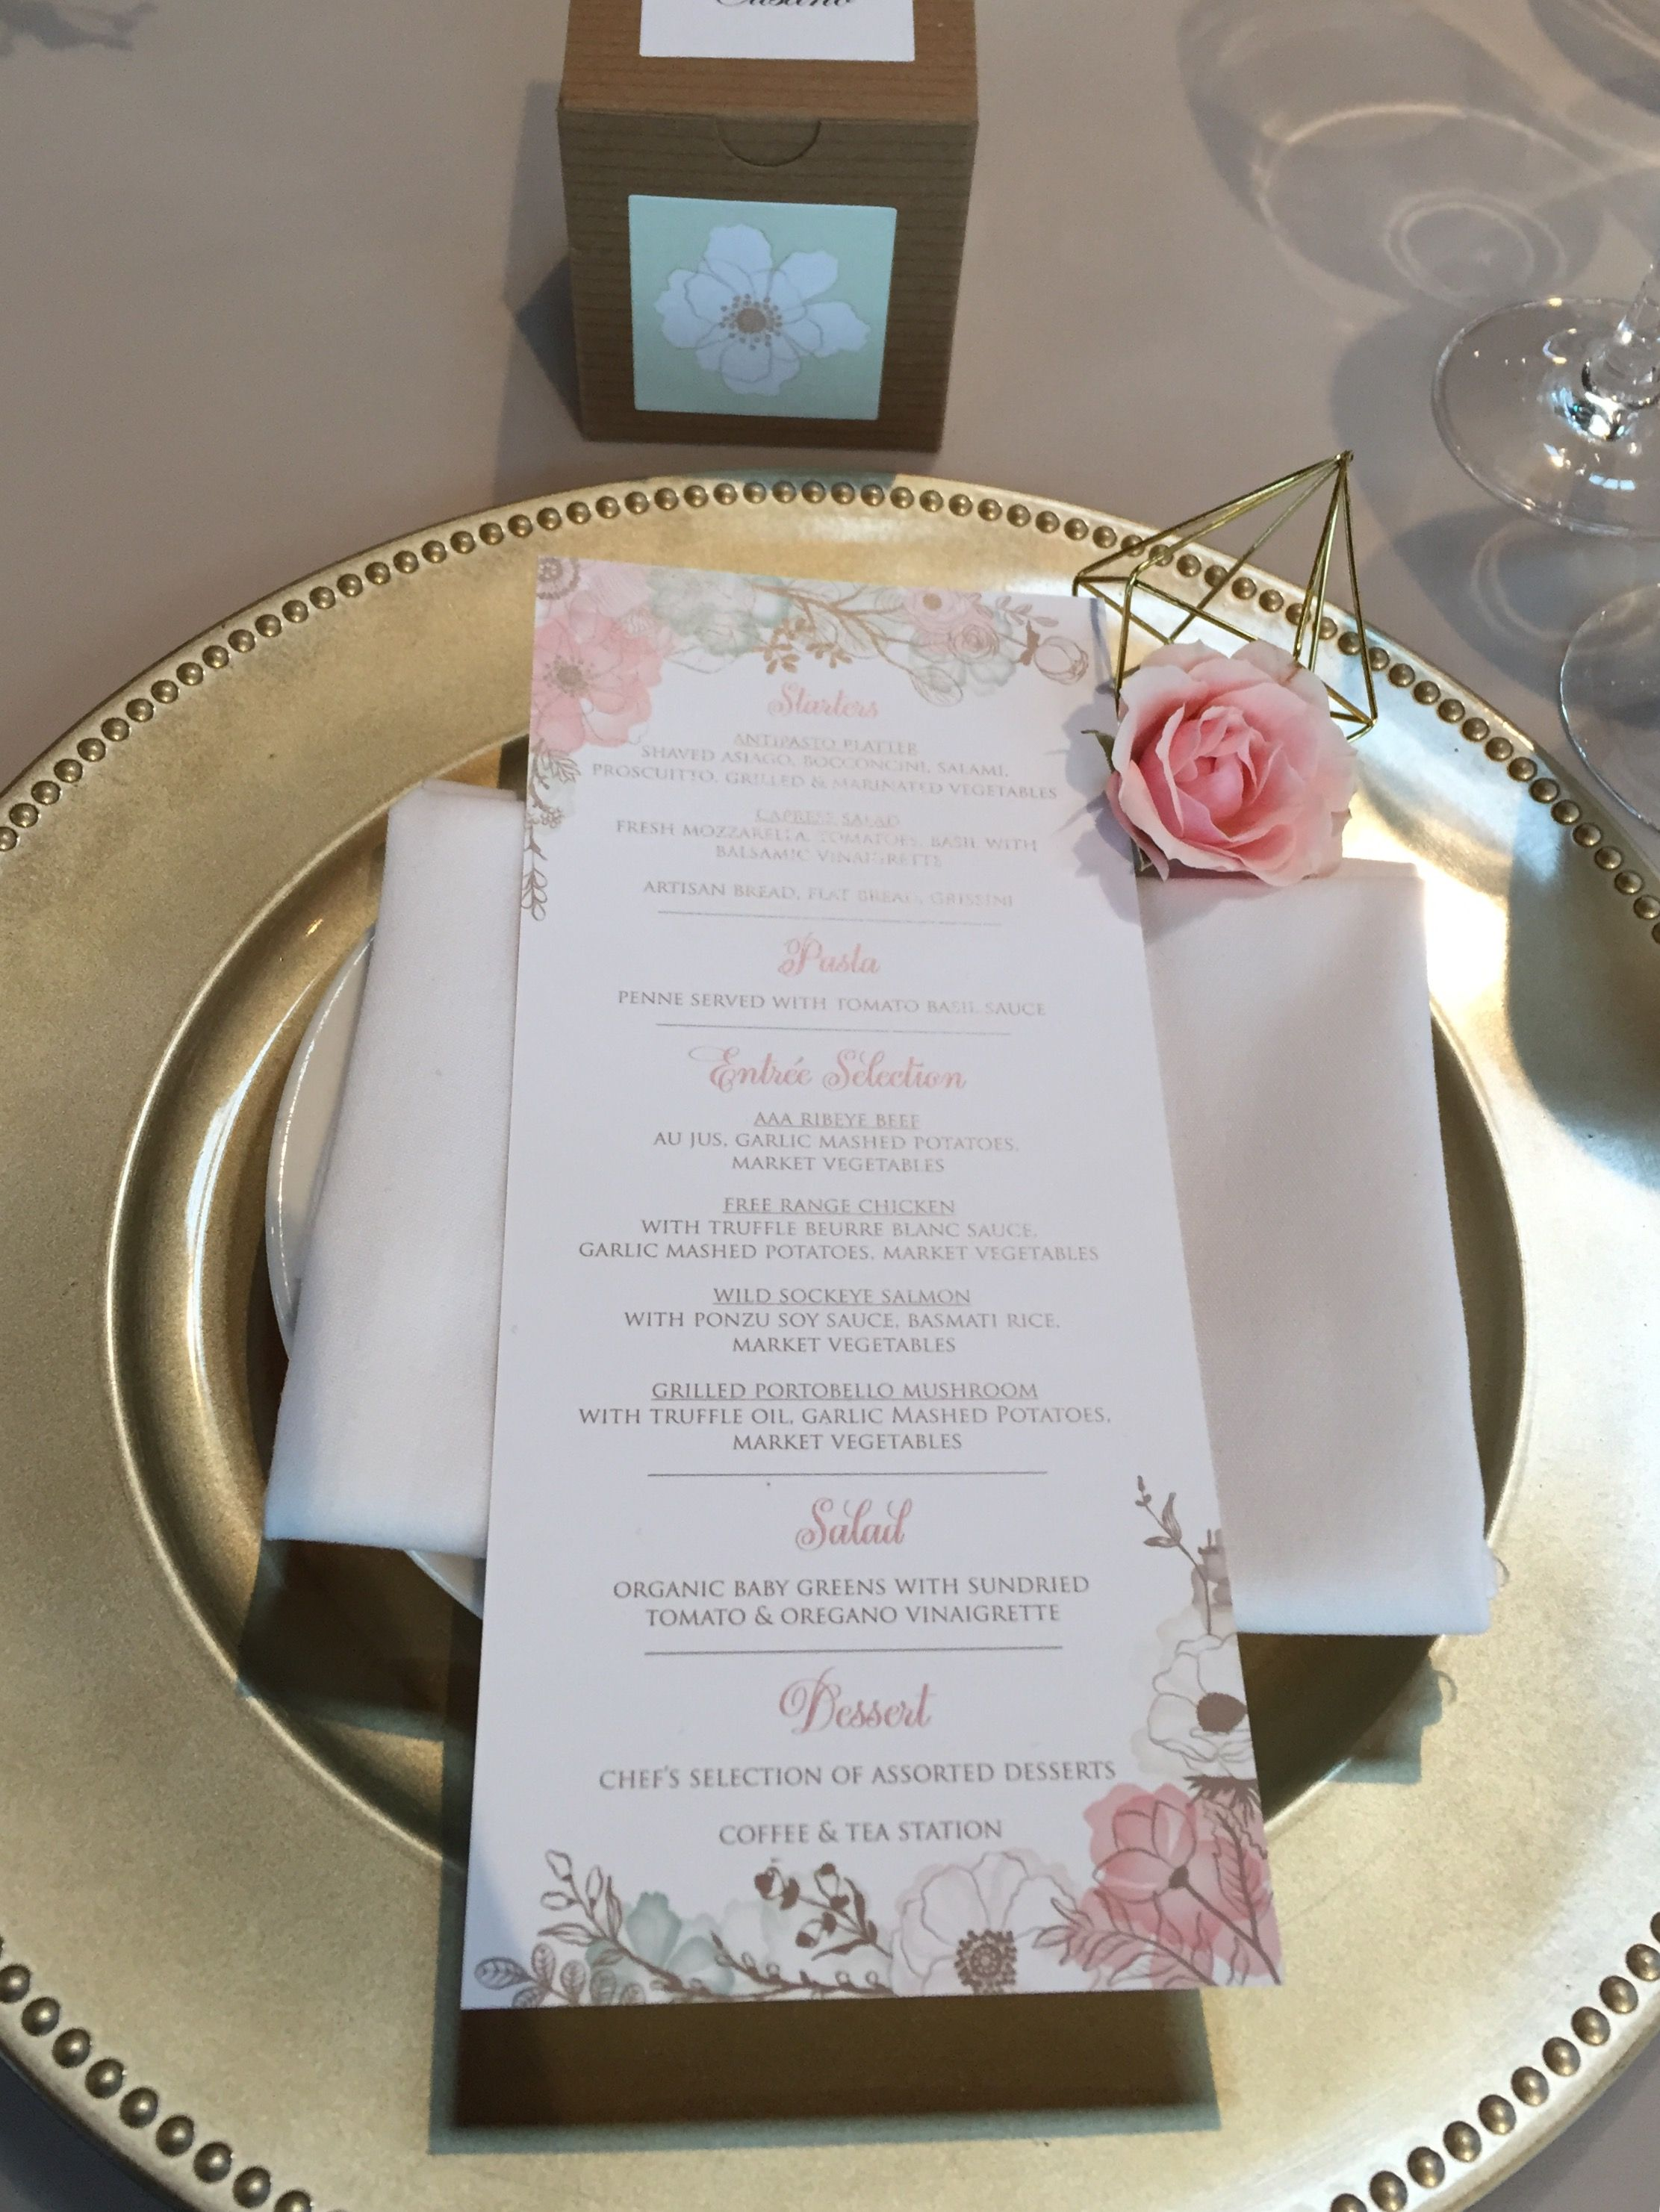 April 2017 real wedding in Vancouver, BC. Head table place setting ...